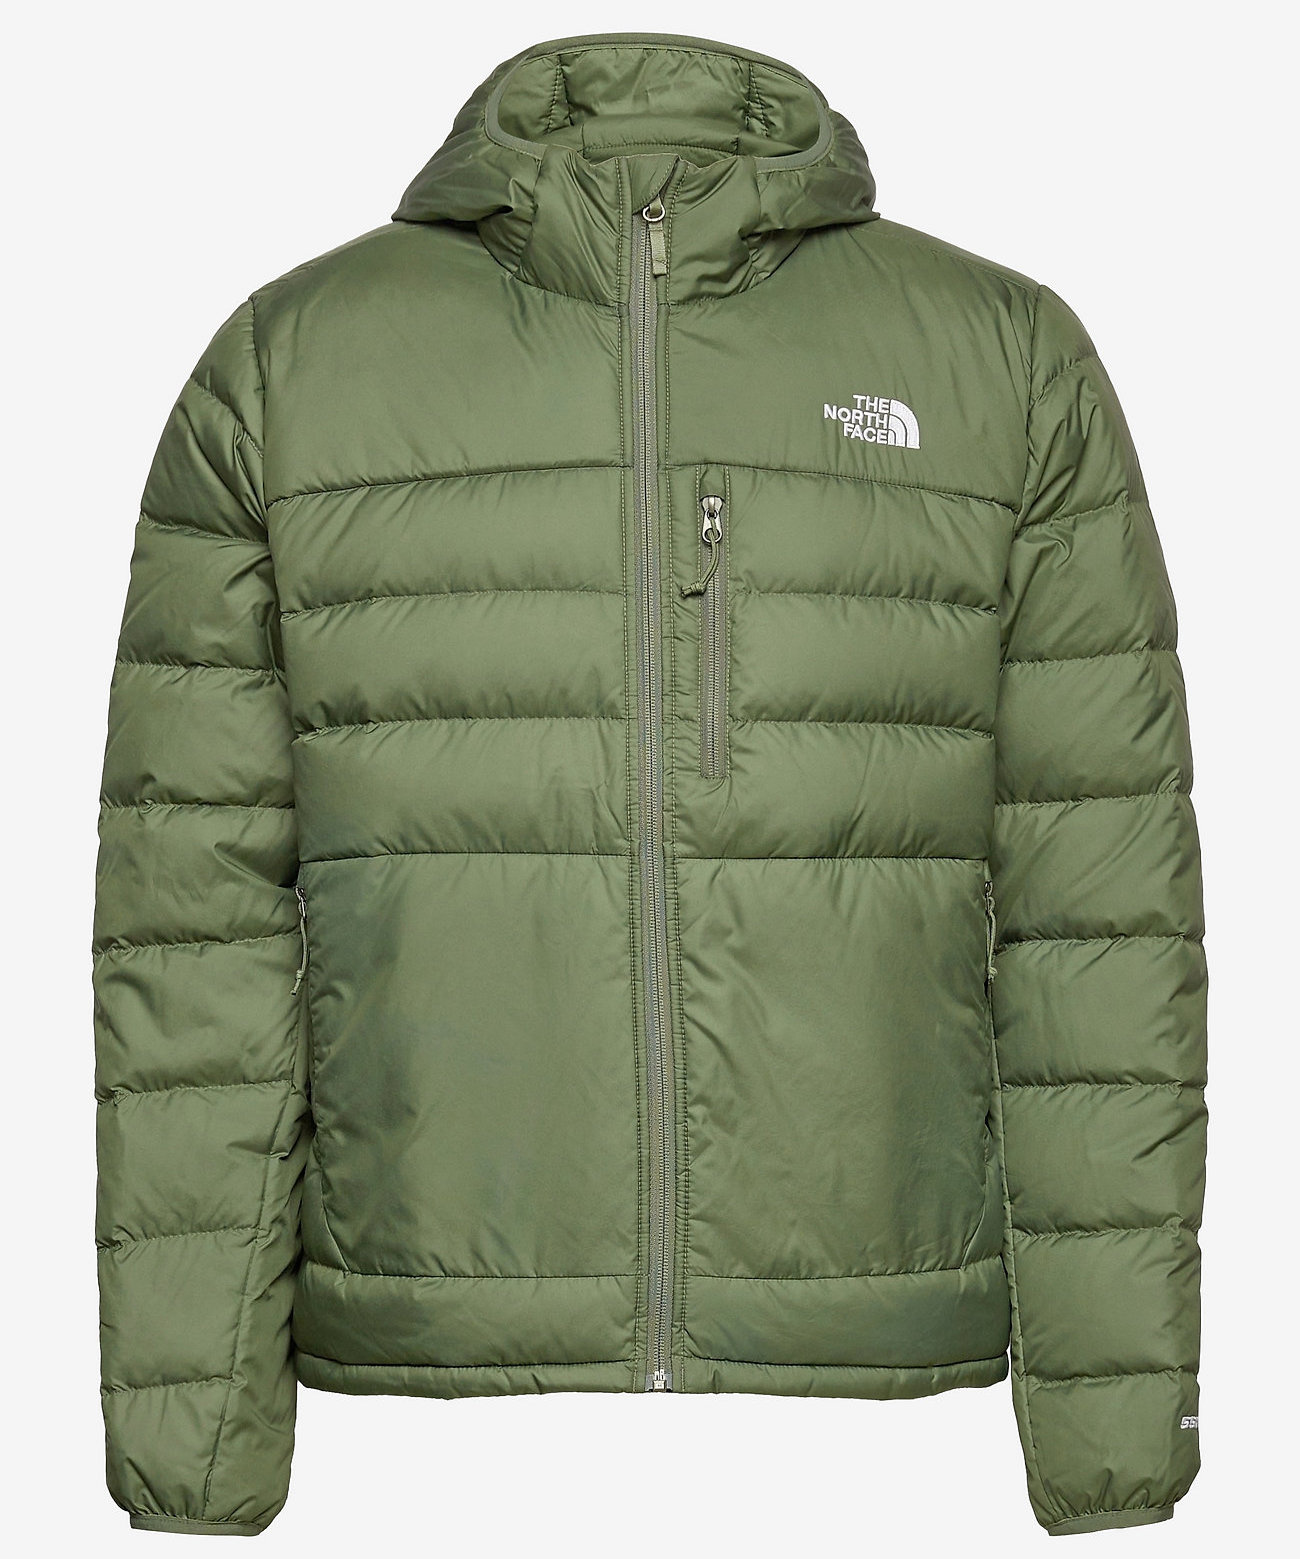 The North Face Winterjas, groen